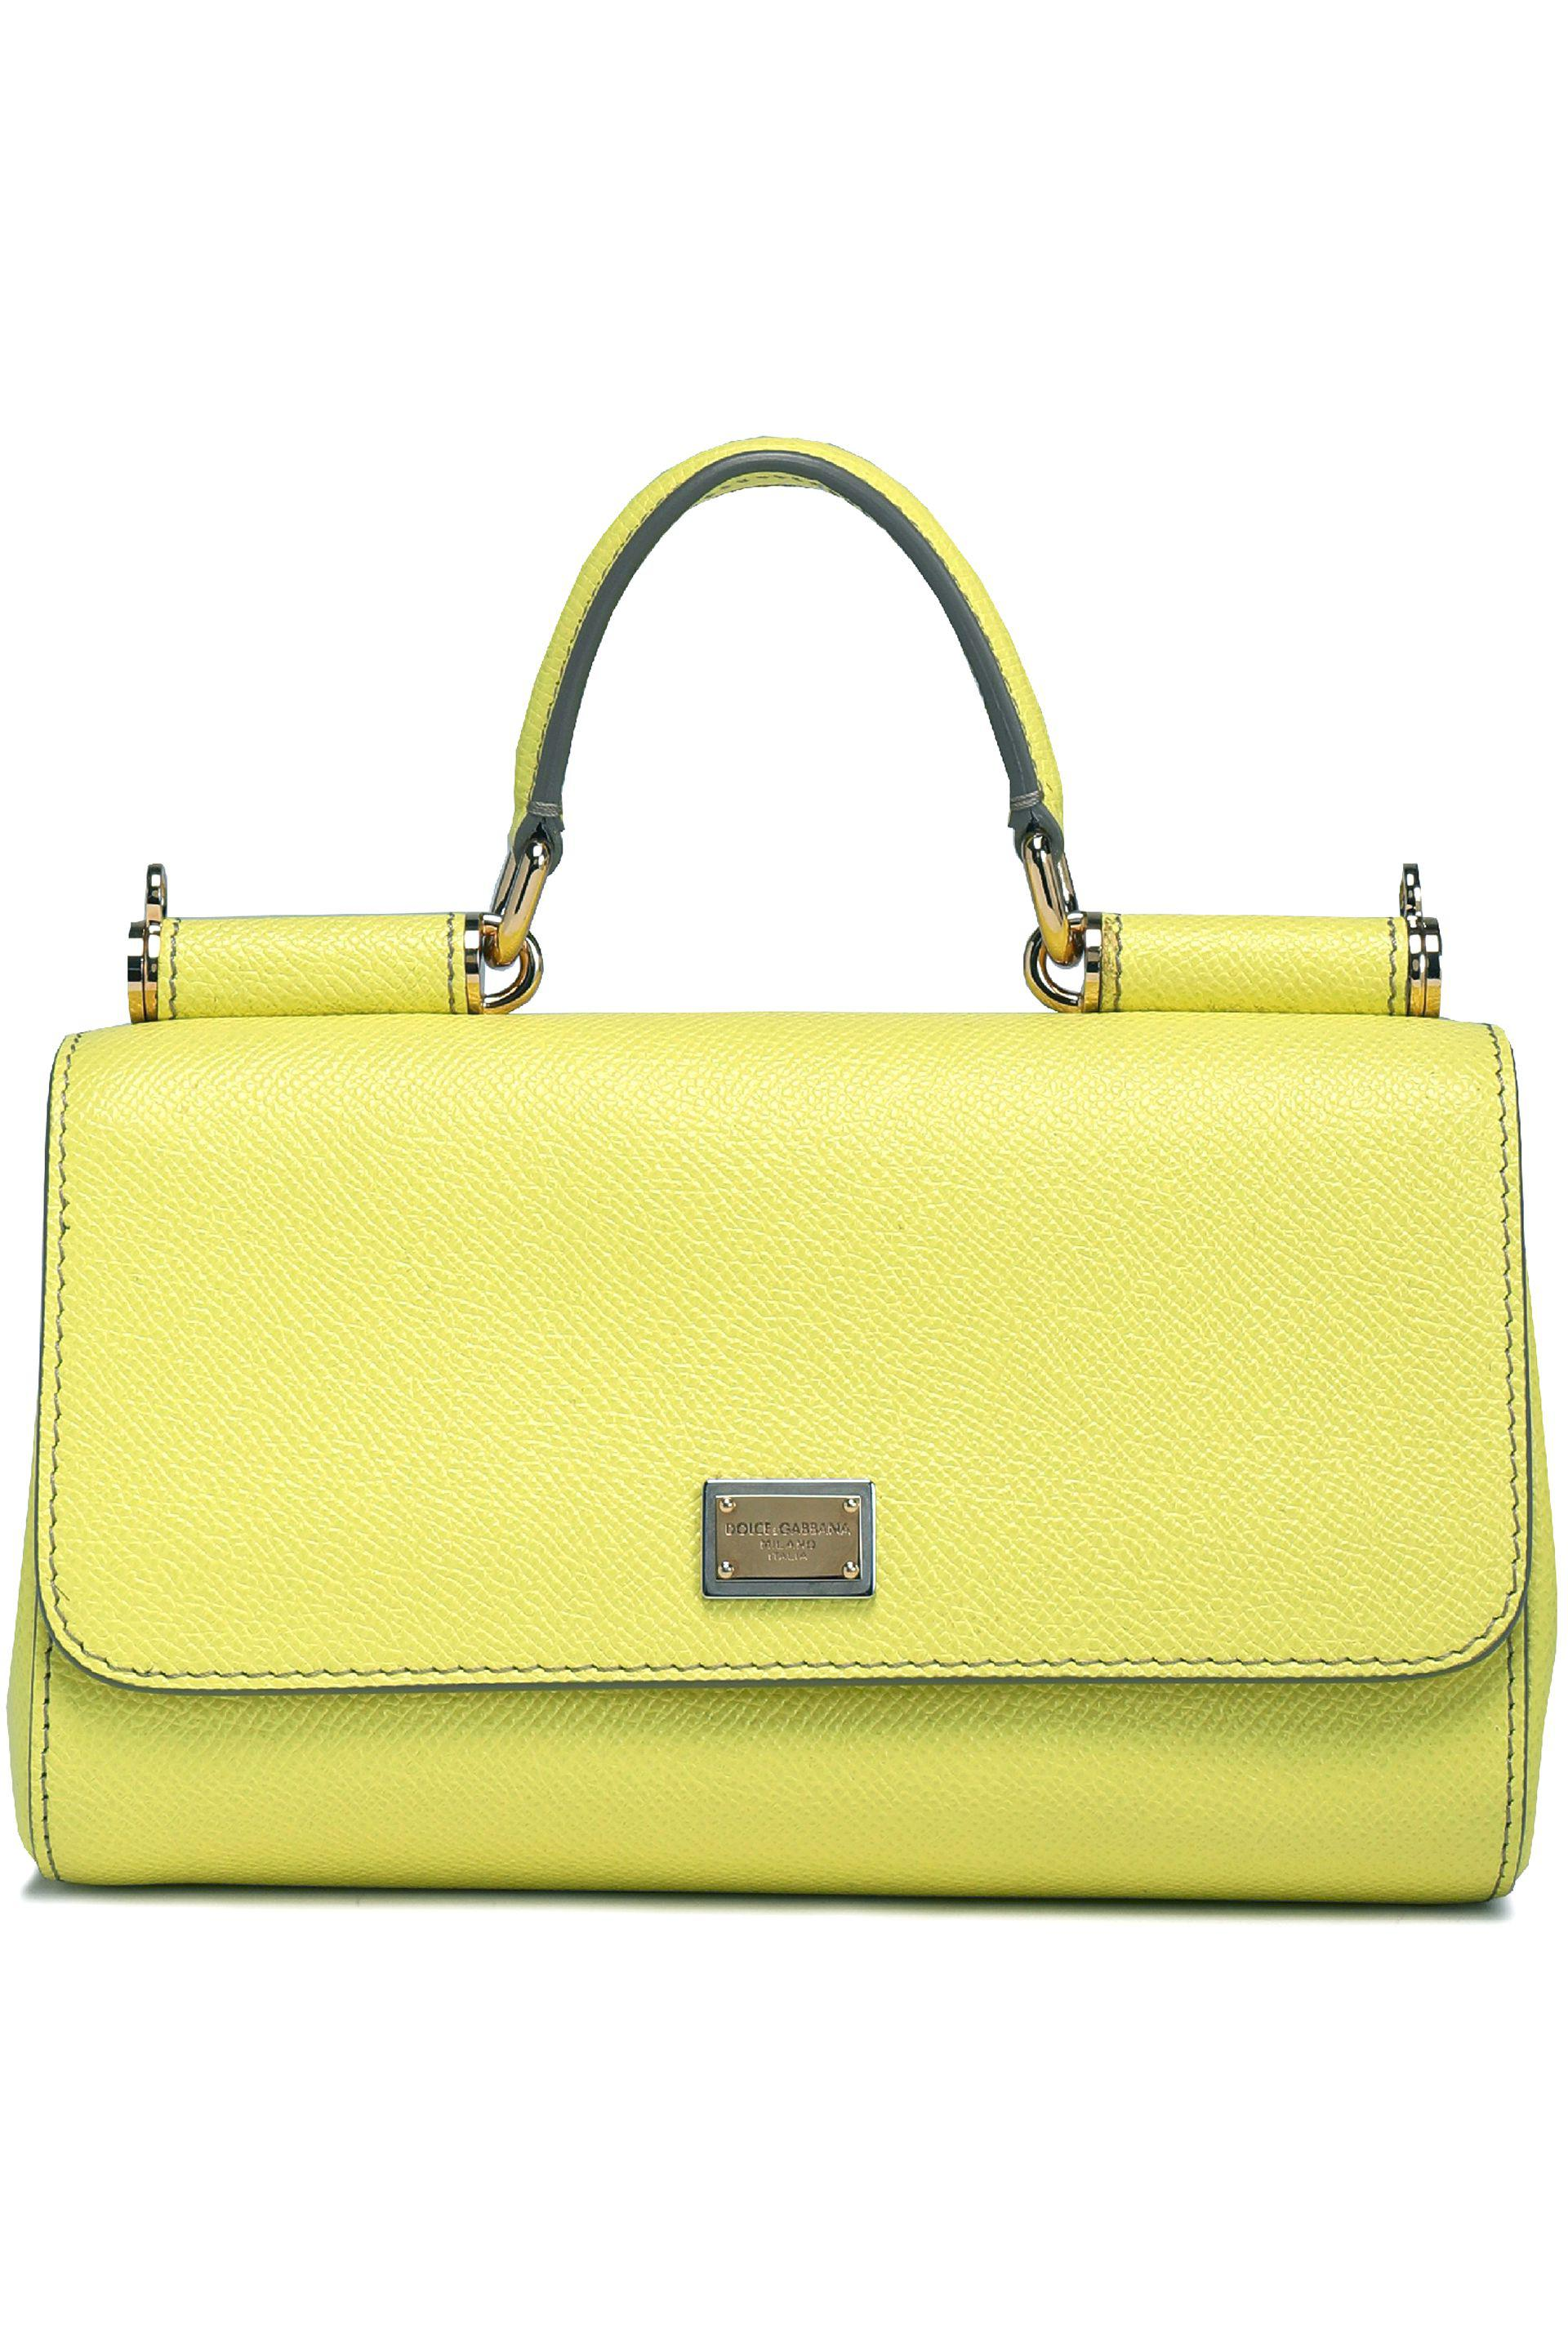 e311c7fbf2 Dolce & Gabbana Miss Sicily Textured-leather Shoulder Bag in Yellow ...